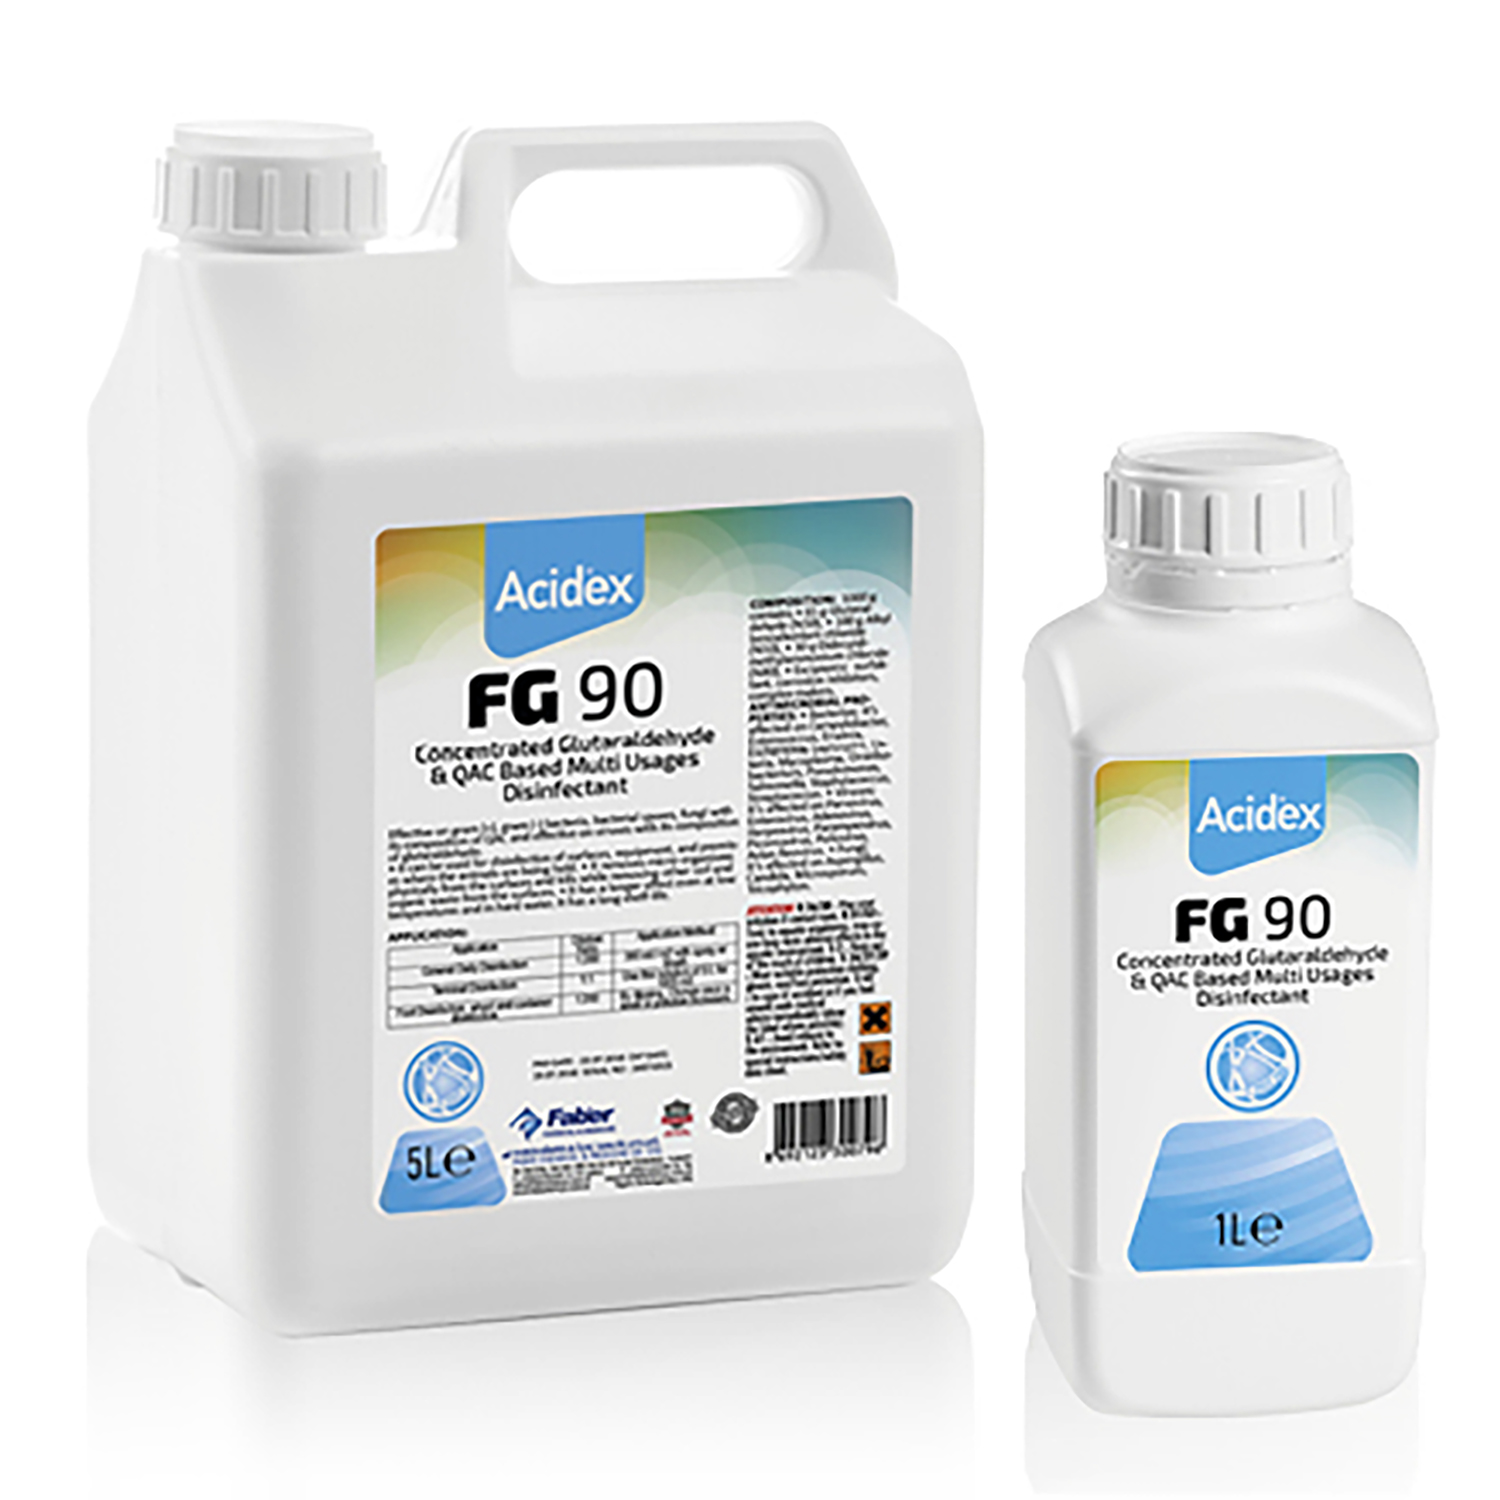 Acidex FG 90